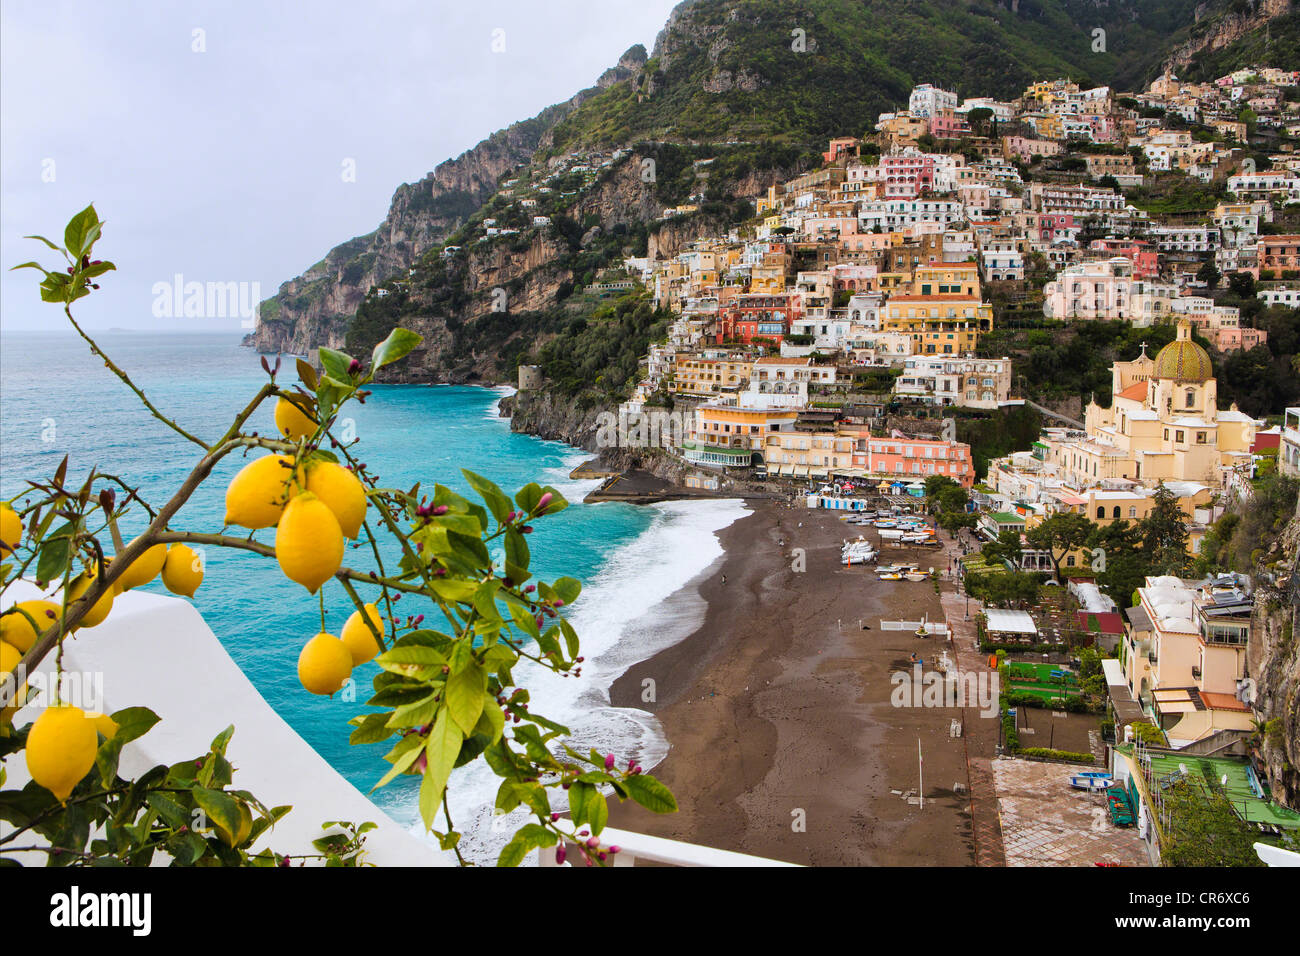 High Angle View of a Hillside Town, Positano, Campania, Italy - Stock Image